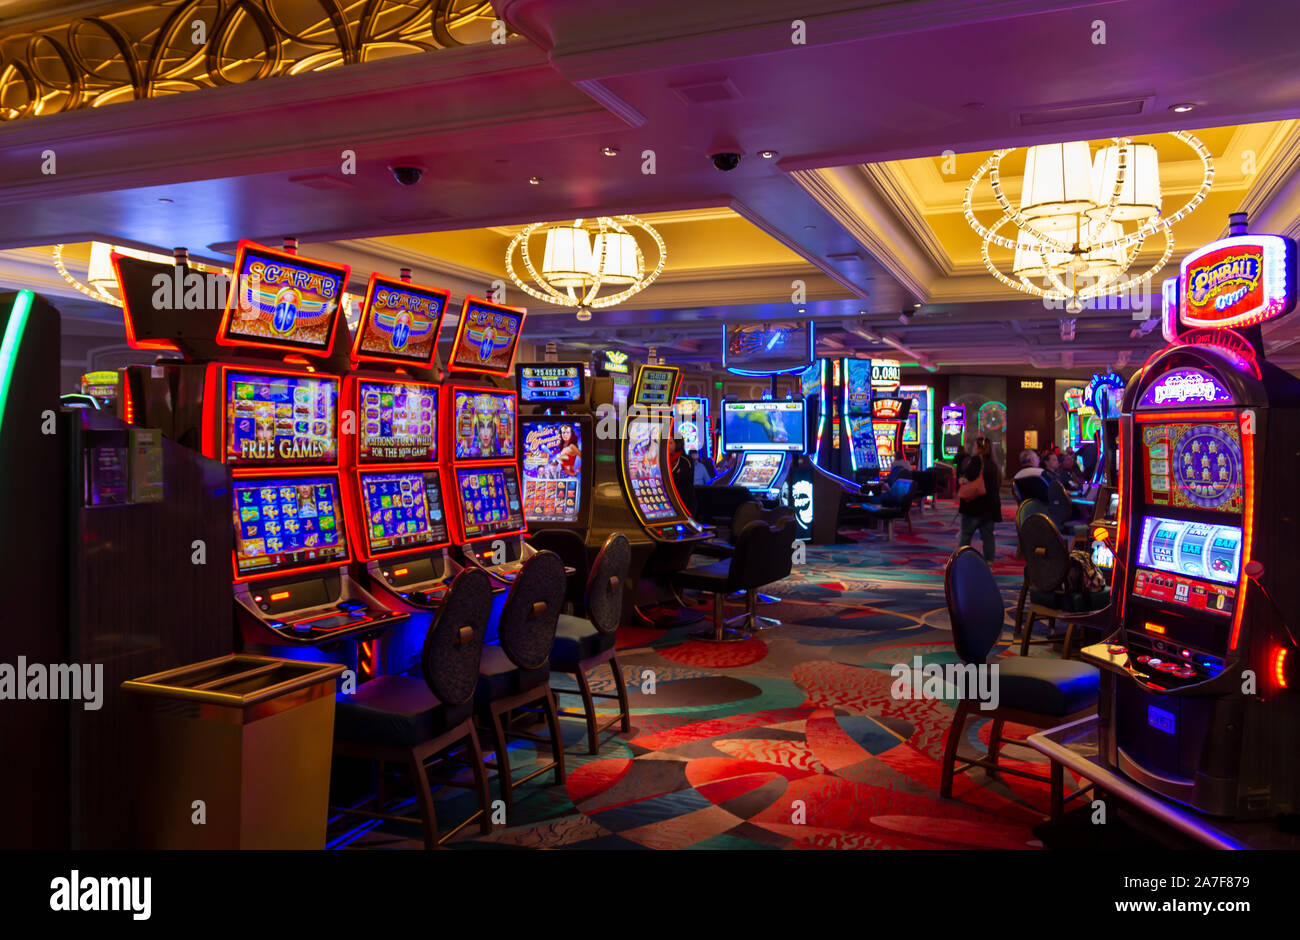 A day at the derby casino slots